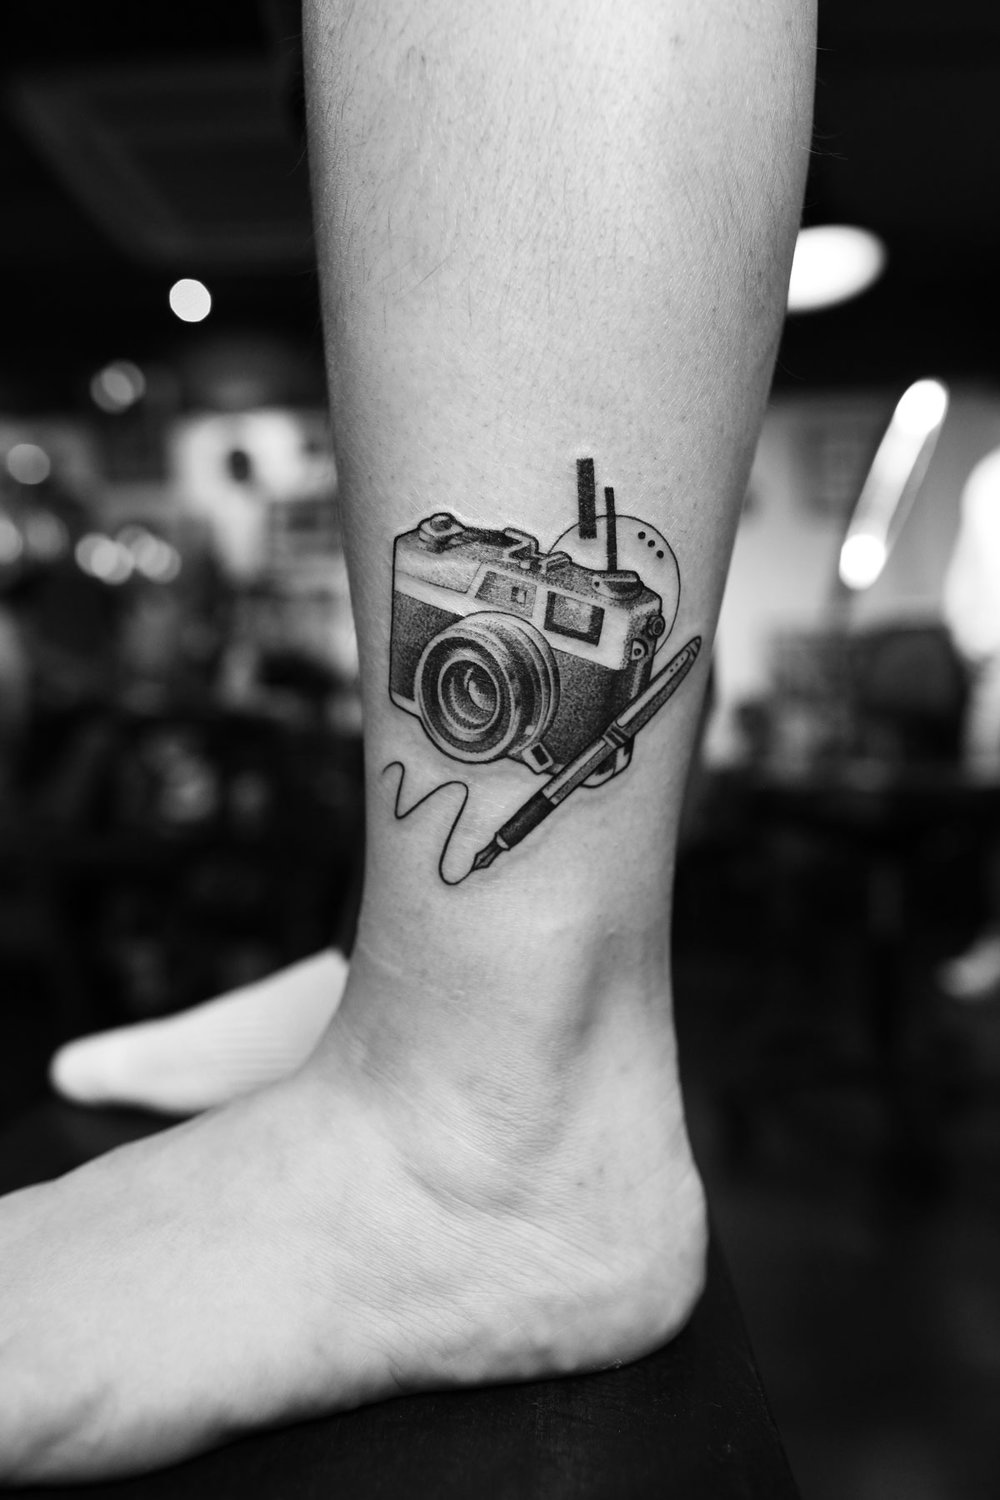 2018-fridays-tattoo-hong-kong-felix-camera-illustration.jpg